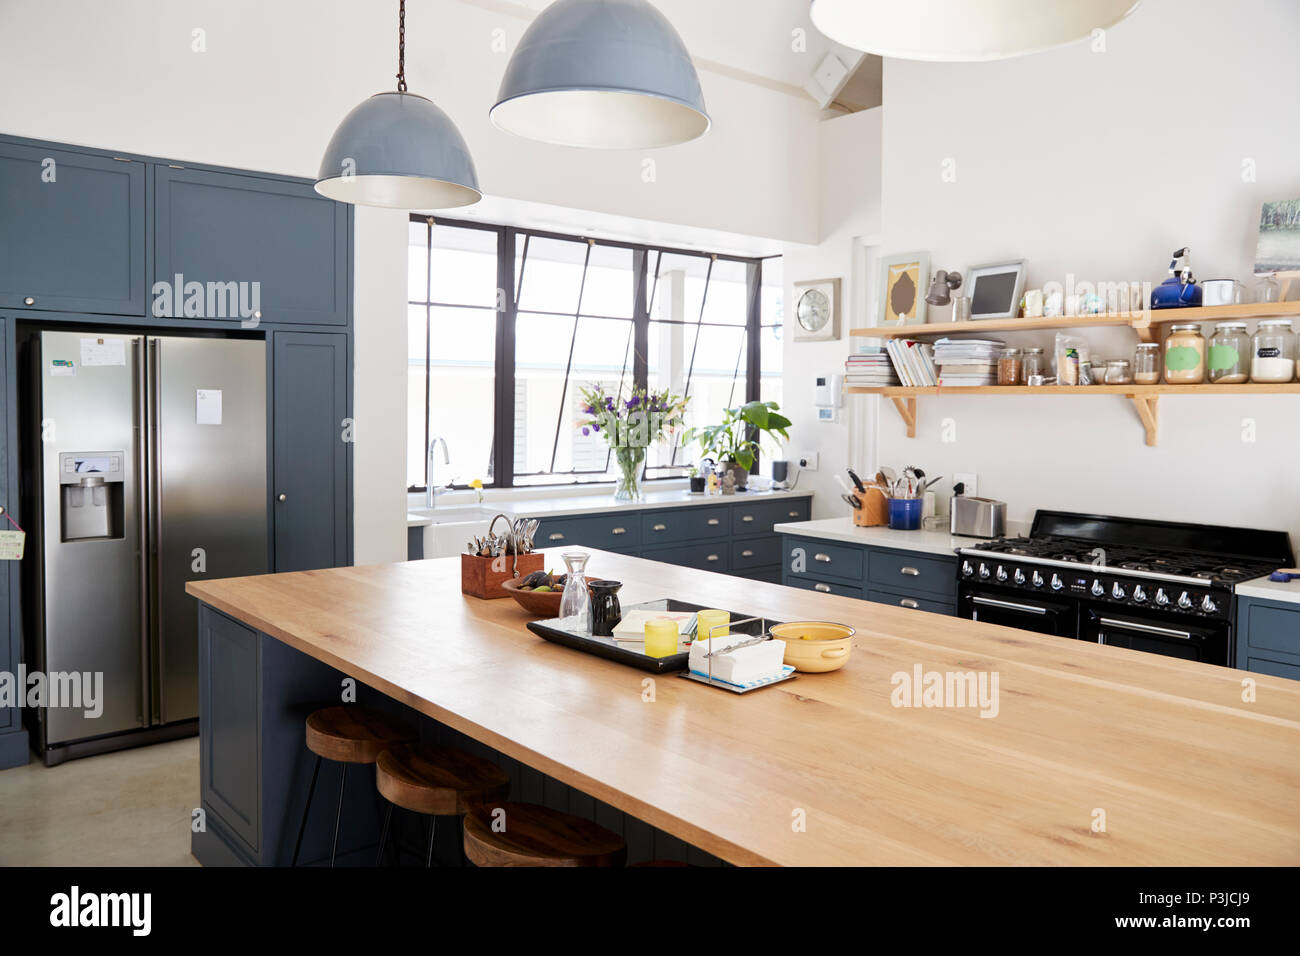 Kitchen Island In A Large Family Kitchen Stock Photo Alamy